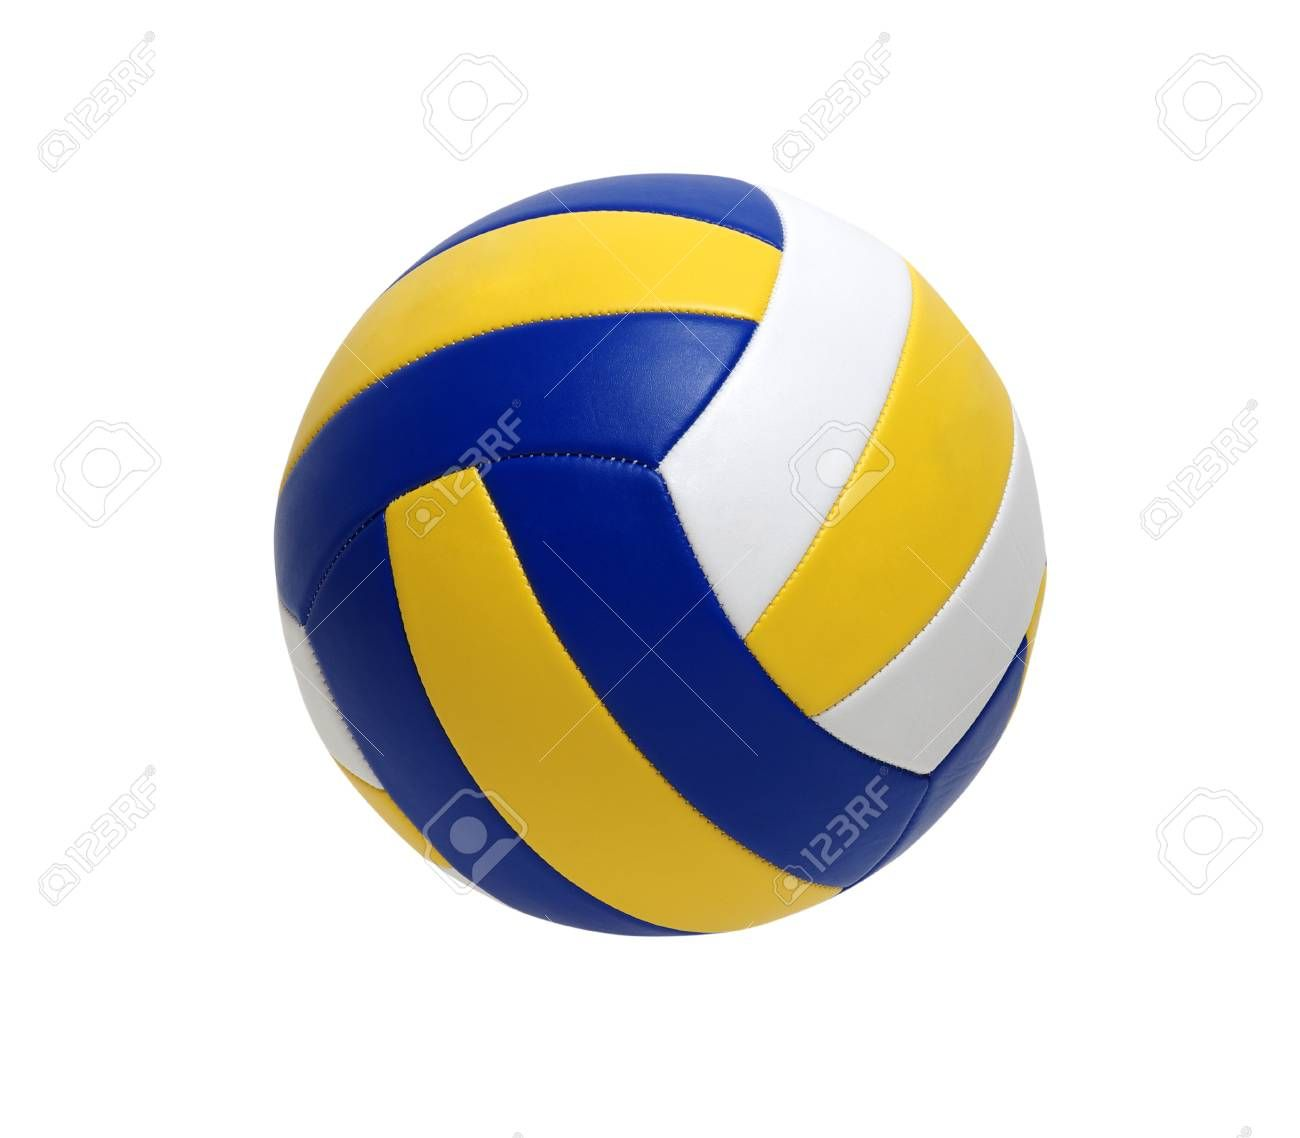 Volleyball Ball Isolated On White Background Stock Photo Aff Isolated Ball Volleyball White In 2020 Vintage Sports Nursery Sports Decorations Sports Nursery